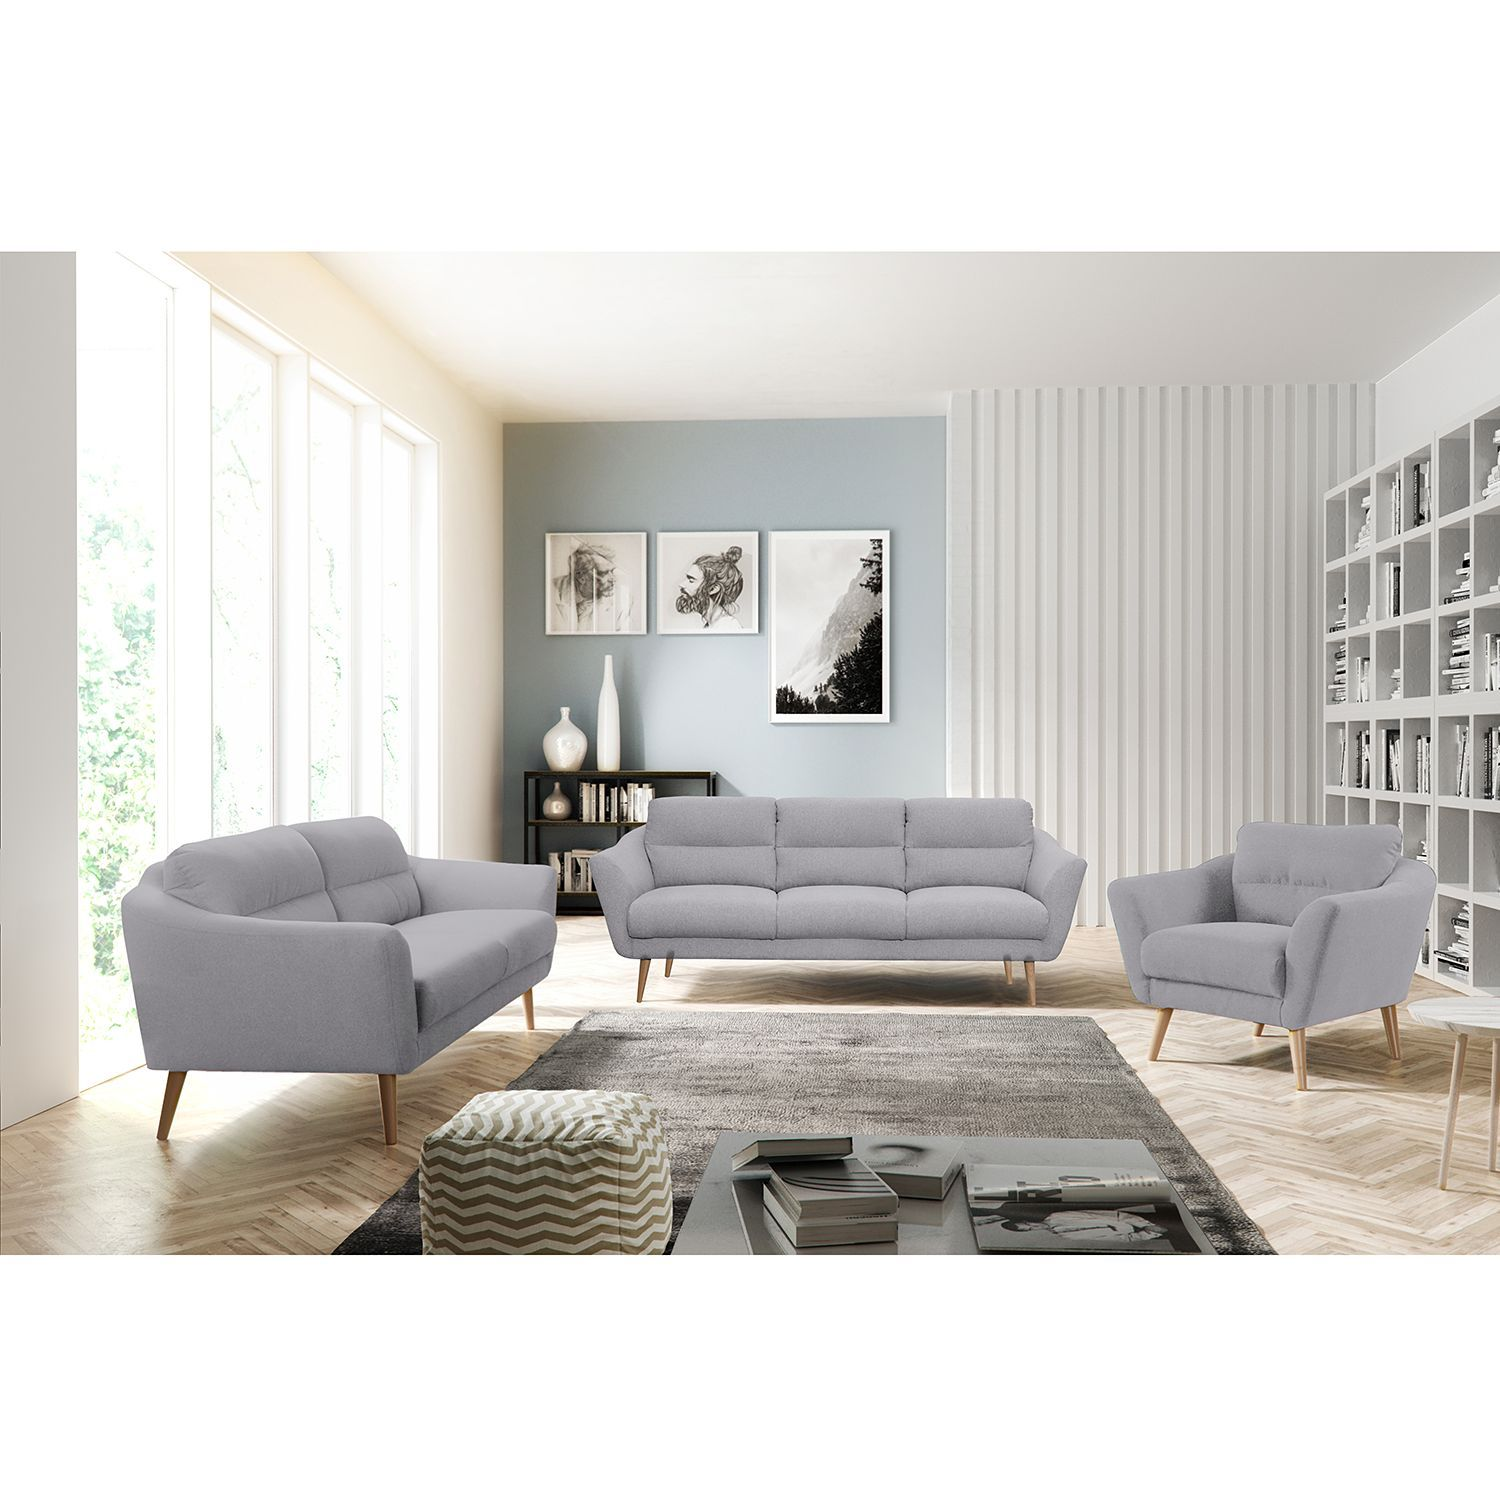 Relaxsessel Zweisitzer Home24 Sessel Lucinda Sessel In 2019 Sessel Sofas Und